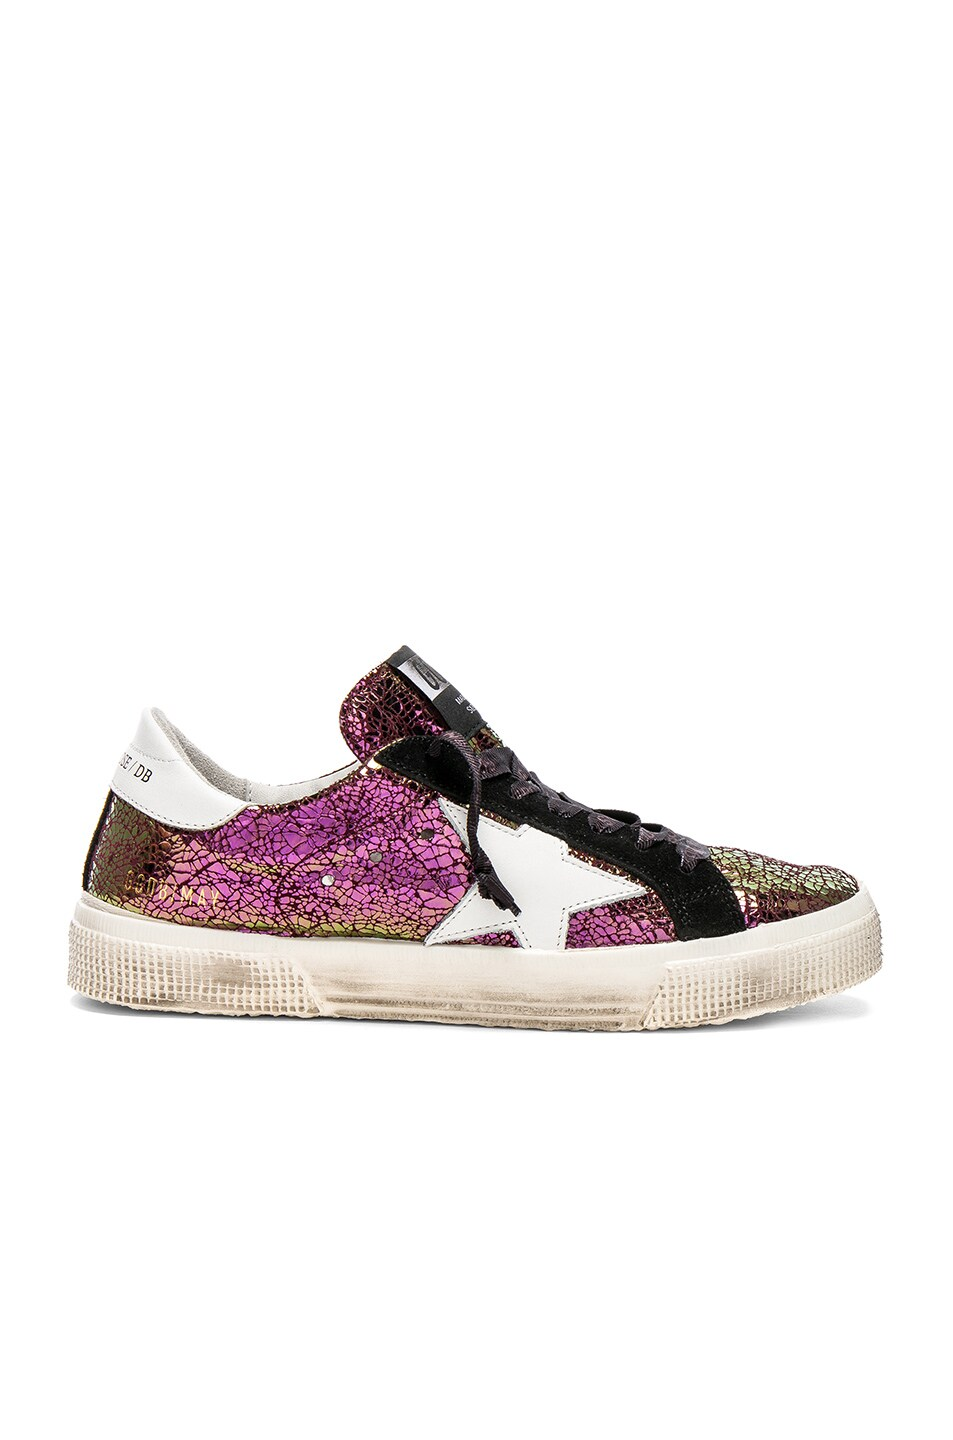 Image 1 of Golden Goose Cracked Iridescent May Sneakers in Iridescent Burgundy & White Star